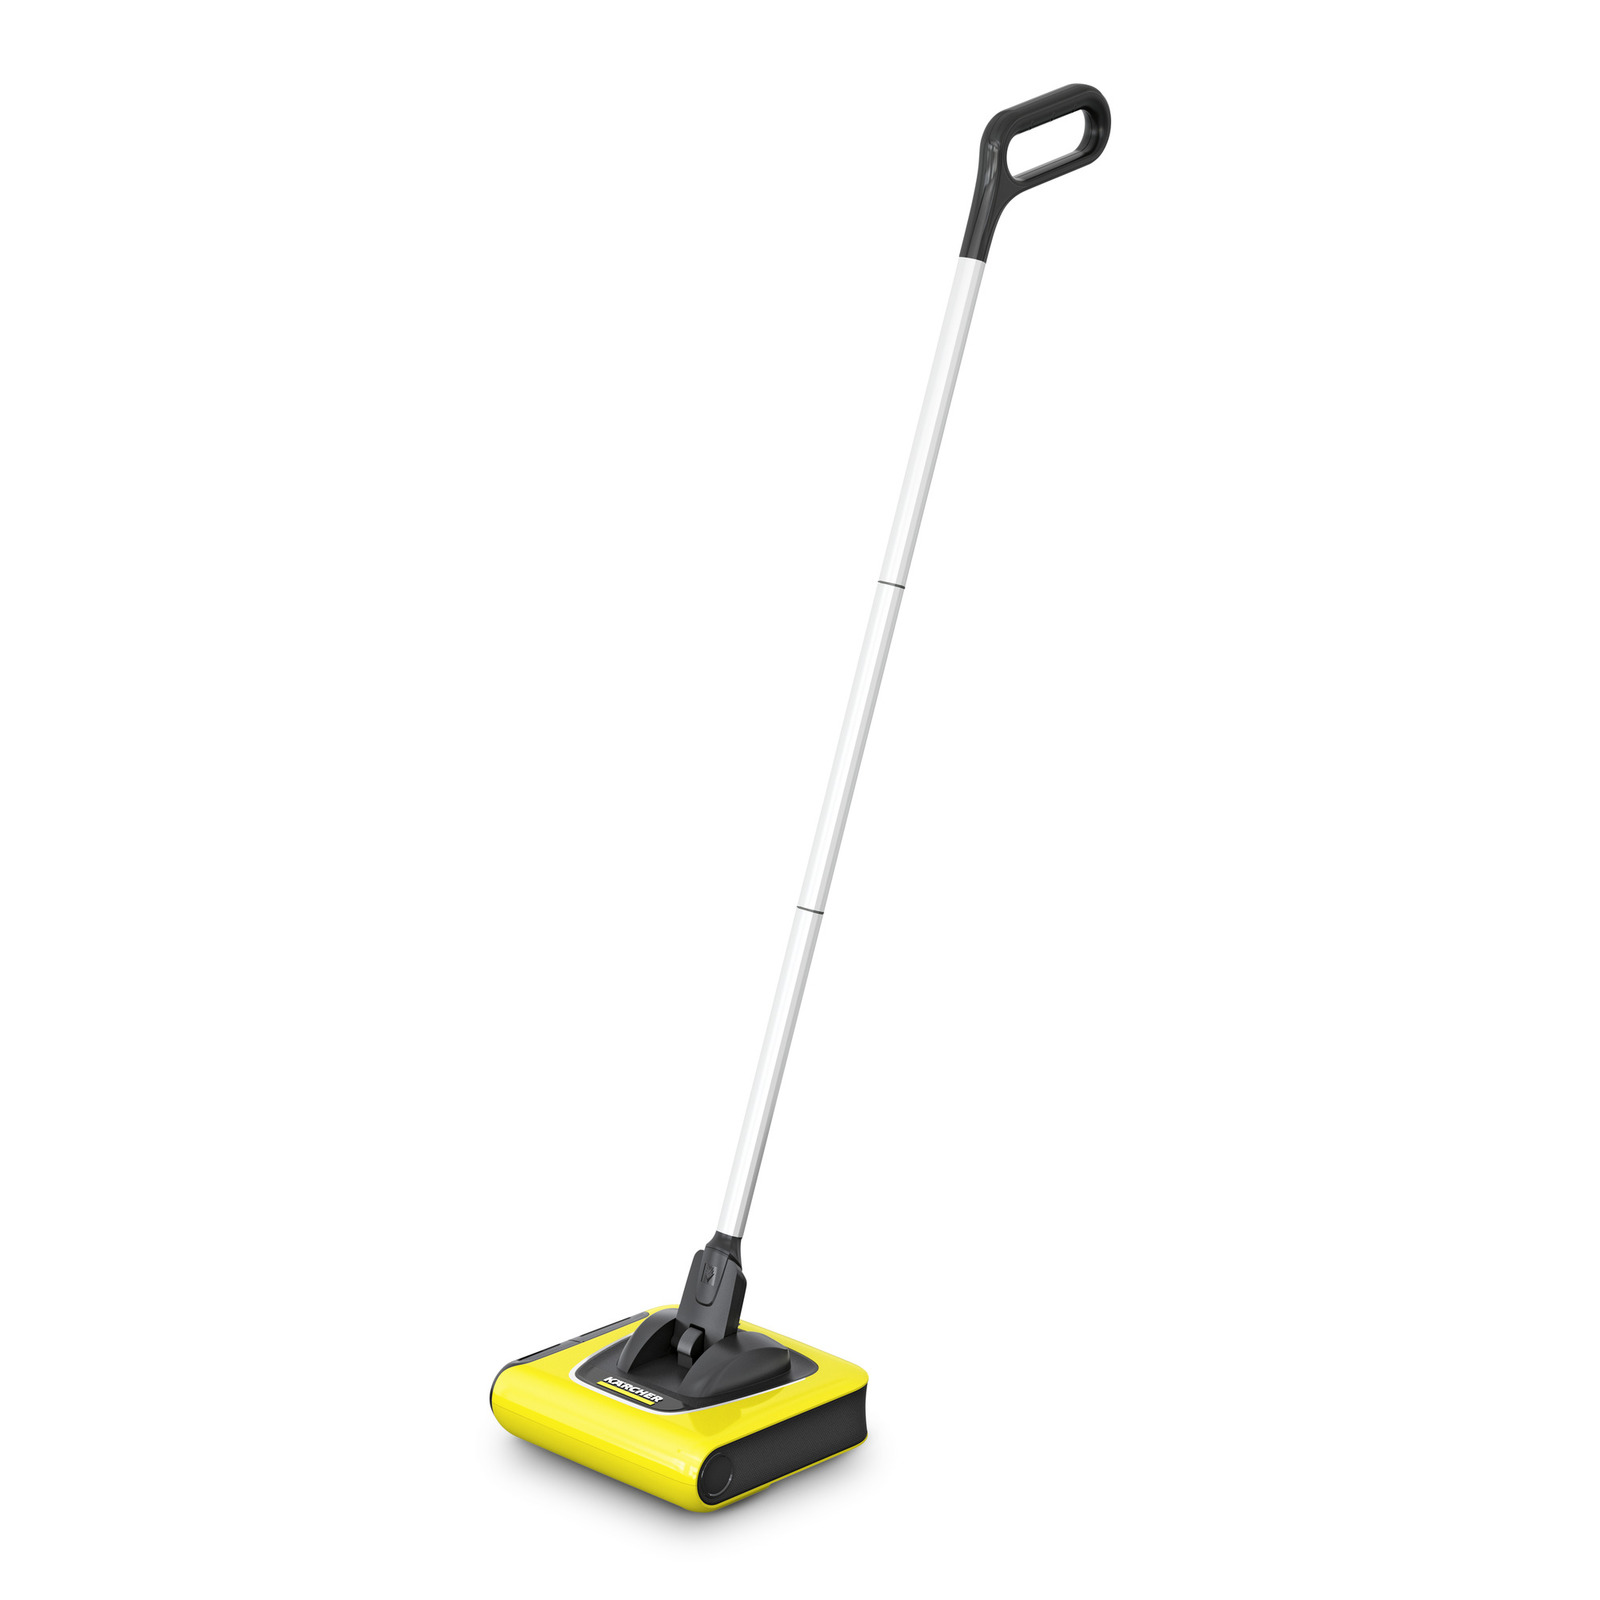 Cordless Electric Brooms Kb 5 Karcher Australia Hoover Vacuum Wiring Diagram A Cleaner The Broom For Convenient Intermediate Cleaning Outstanding Performance In Smallest Of Spaces